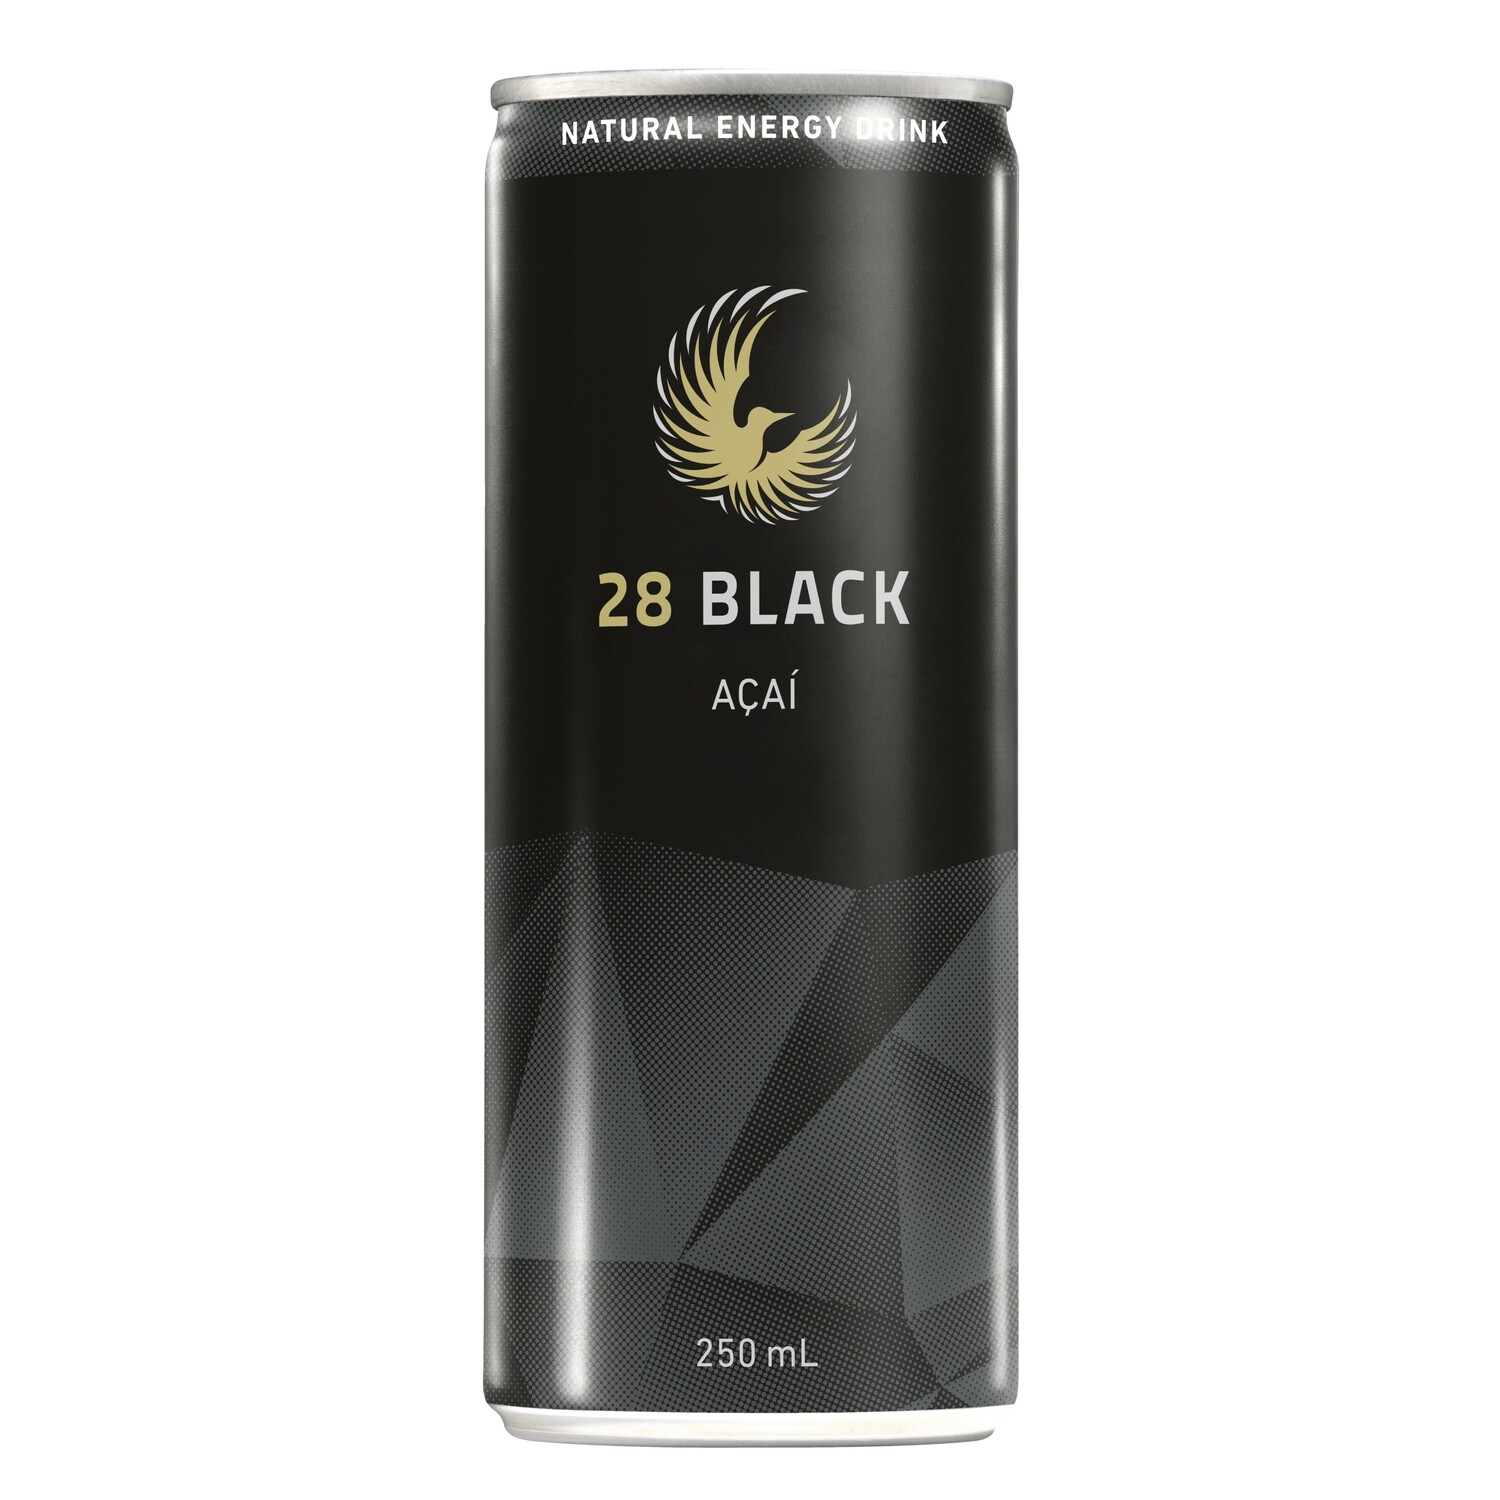 28 BLACK Açai – Tray of 24 cans